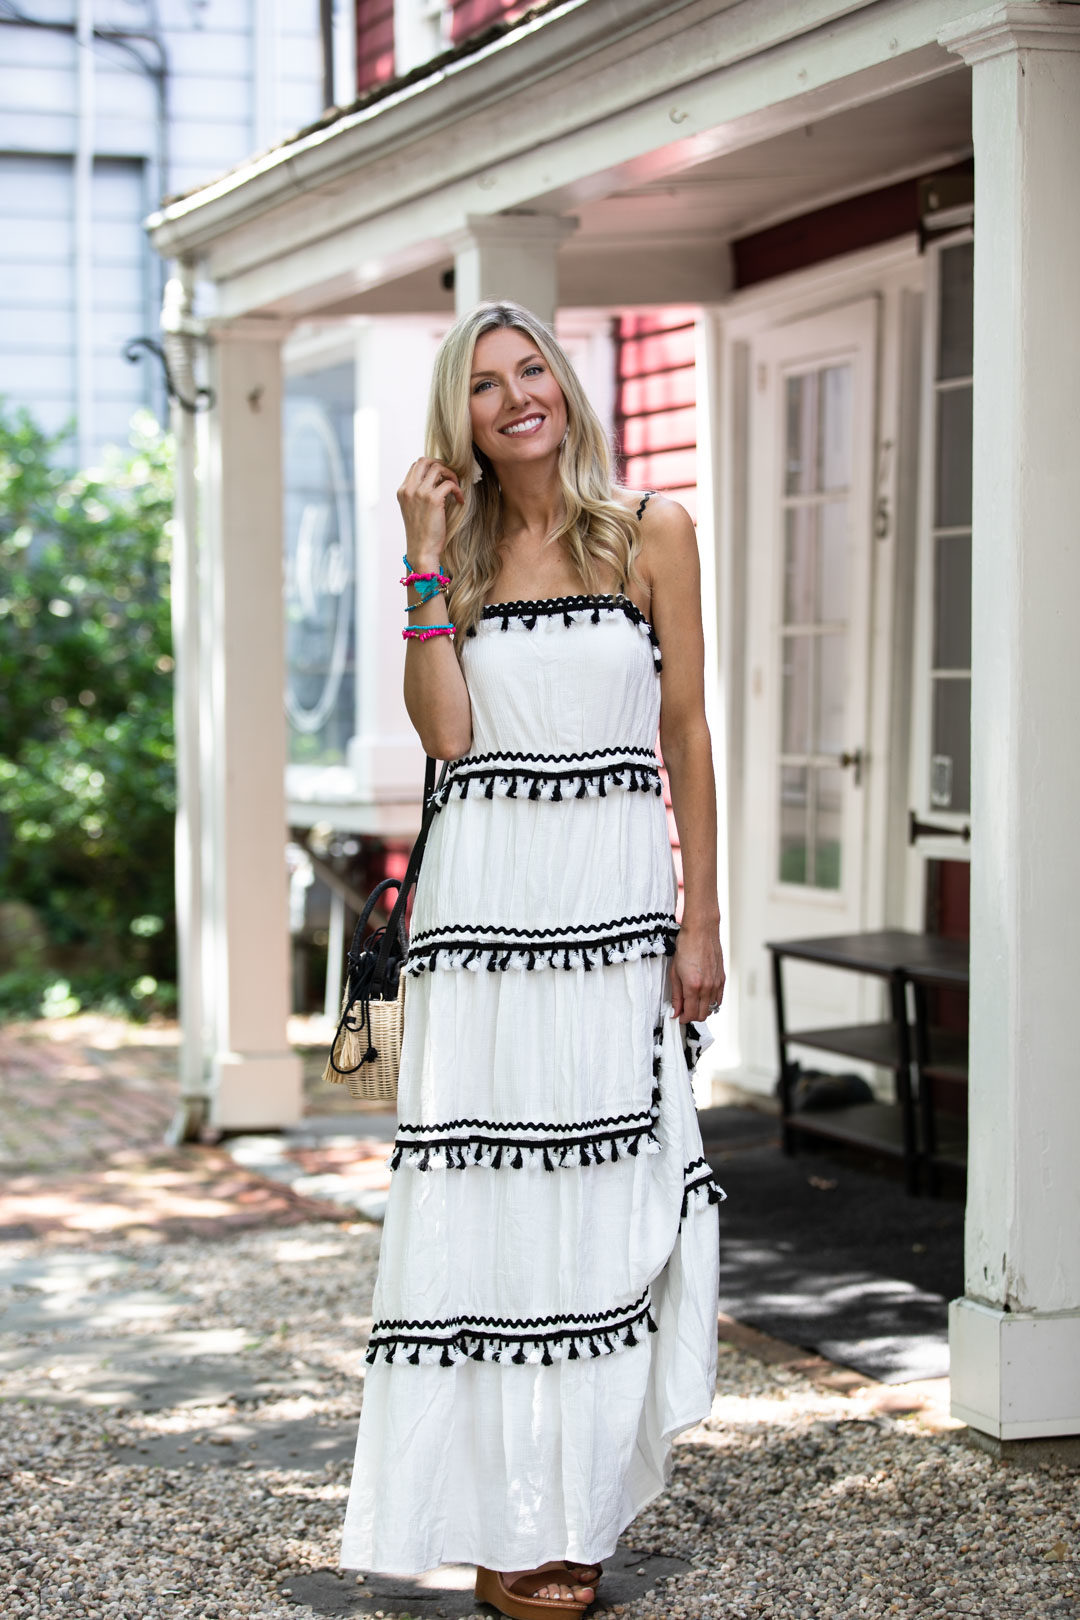 Red Dress Boutique Getaway to Greece White Maxi Dress